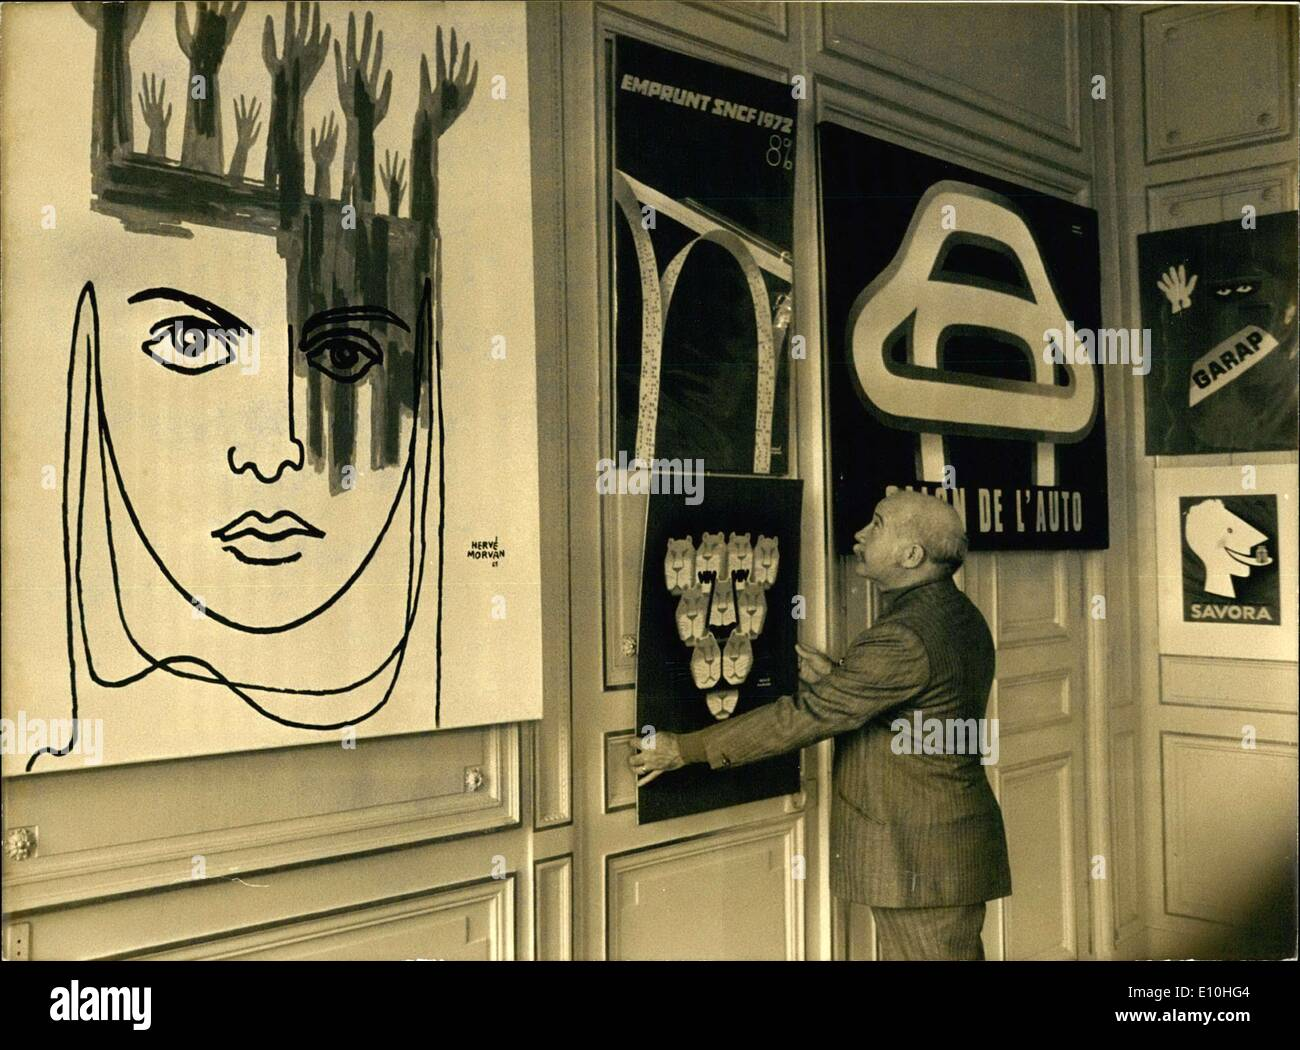 Nov. 17, 1972 - Herve Morgan Photographed in Front of Posters in Exhibit in Paris E - Stock Image